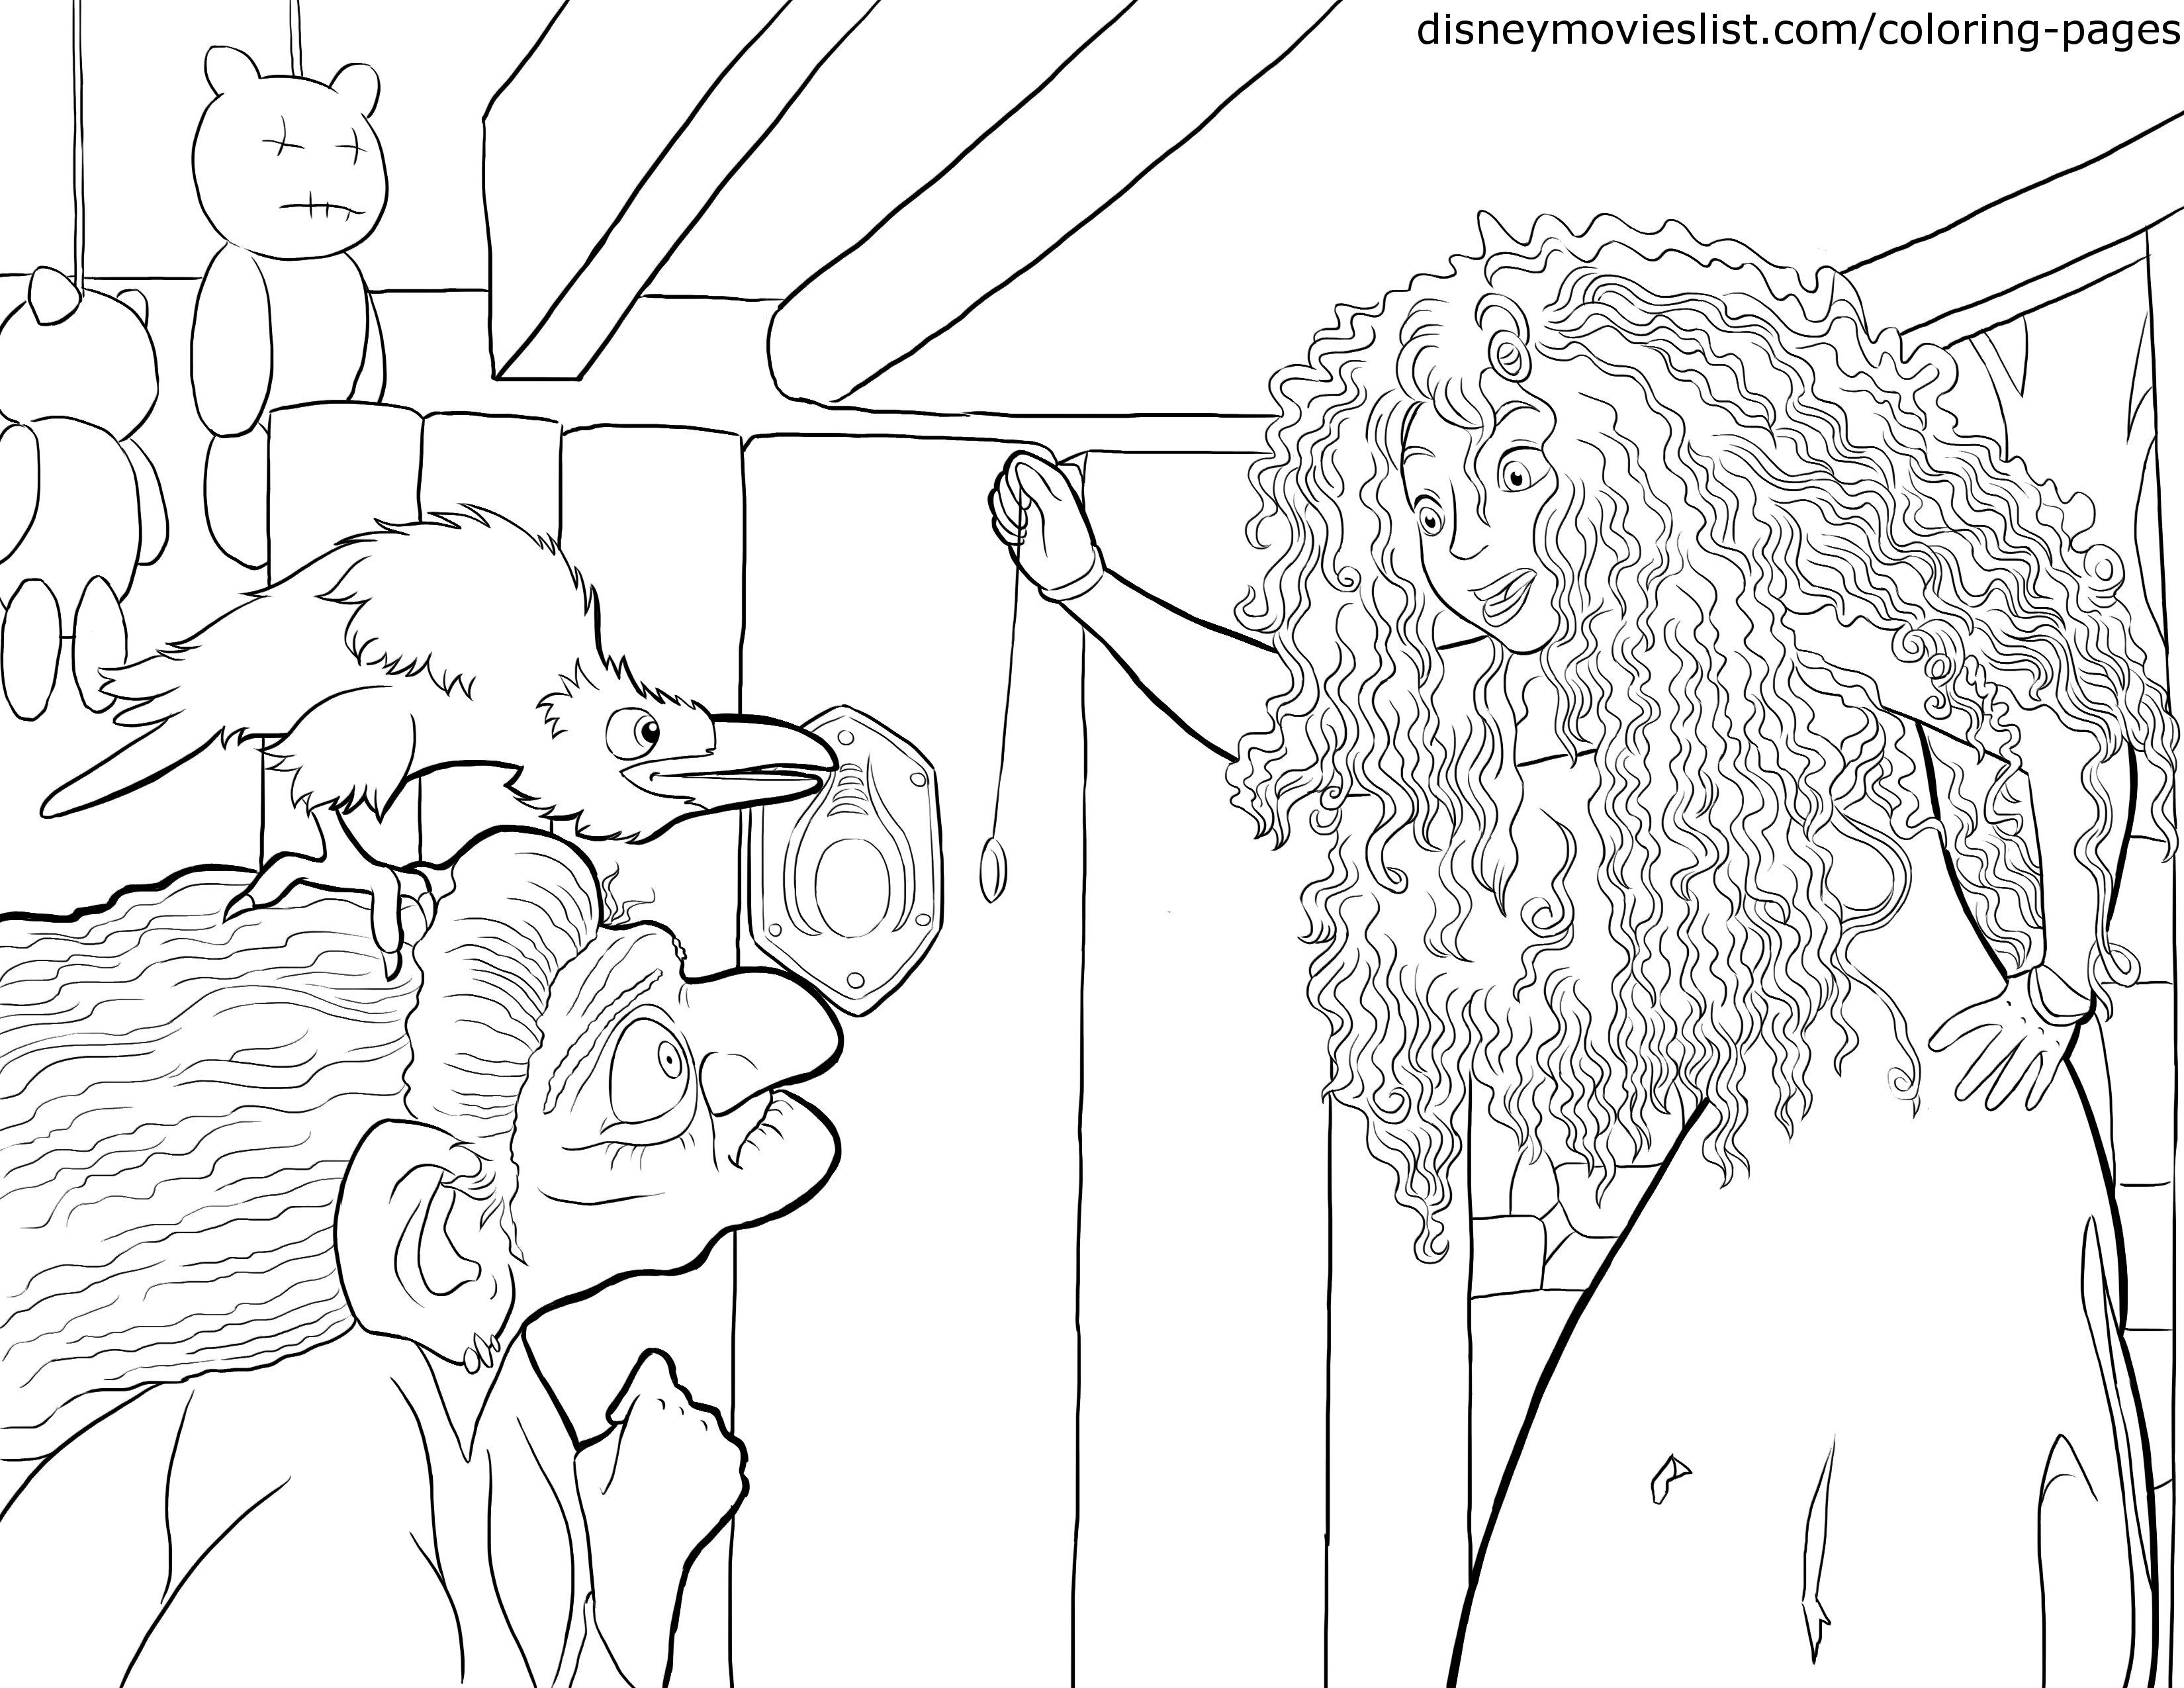 Disney\'s Brave Coloring Pages Sheet, Free Disney Printable Brave ...